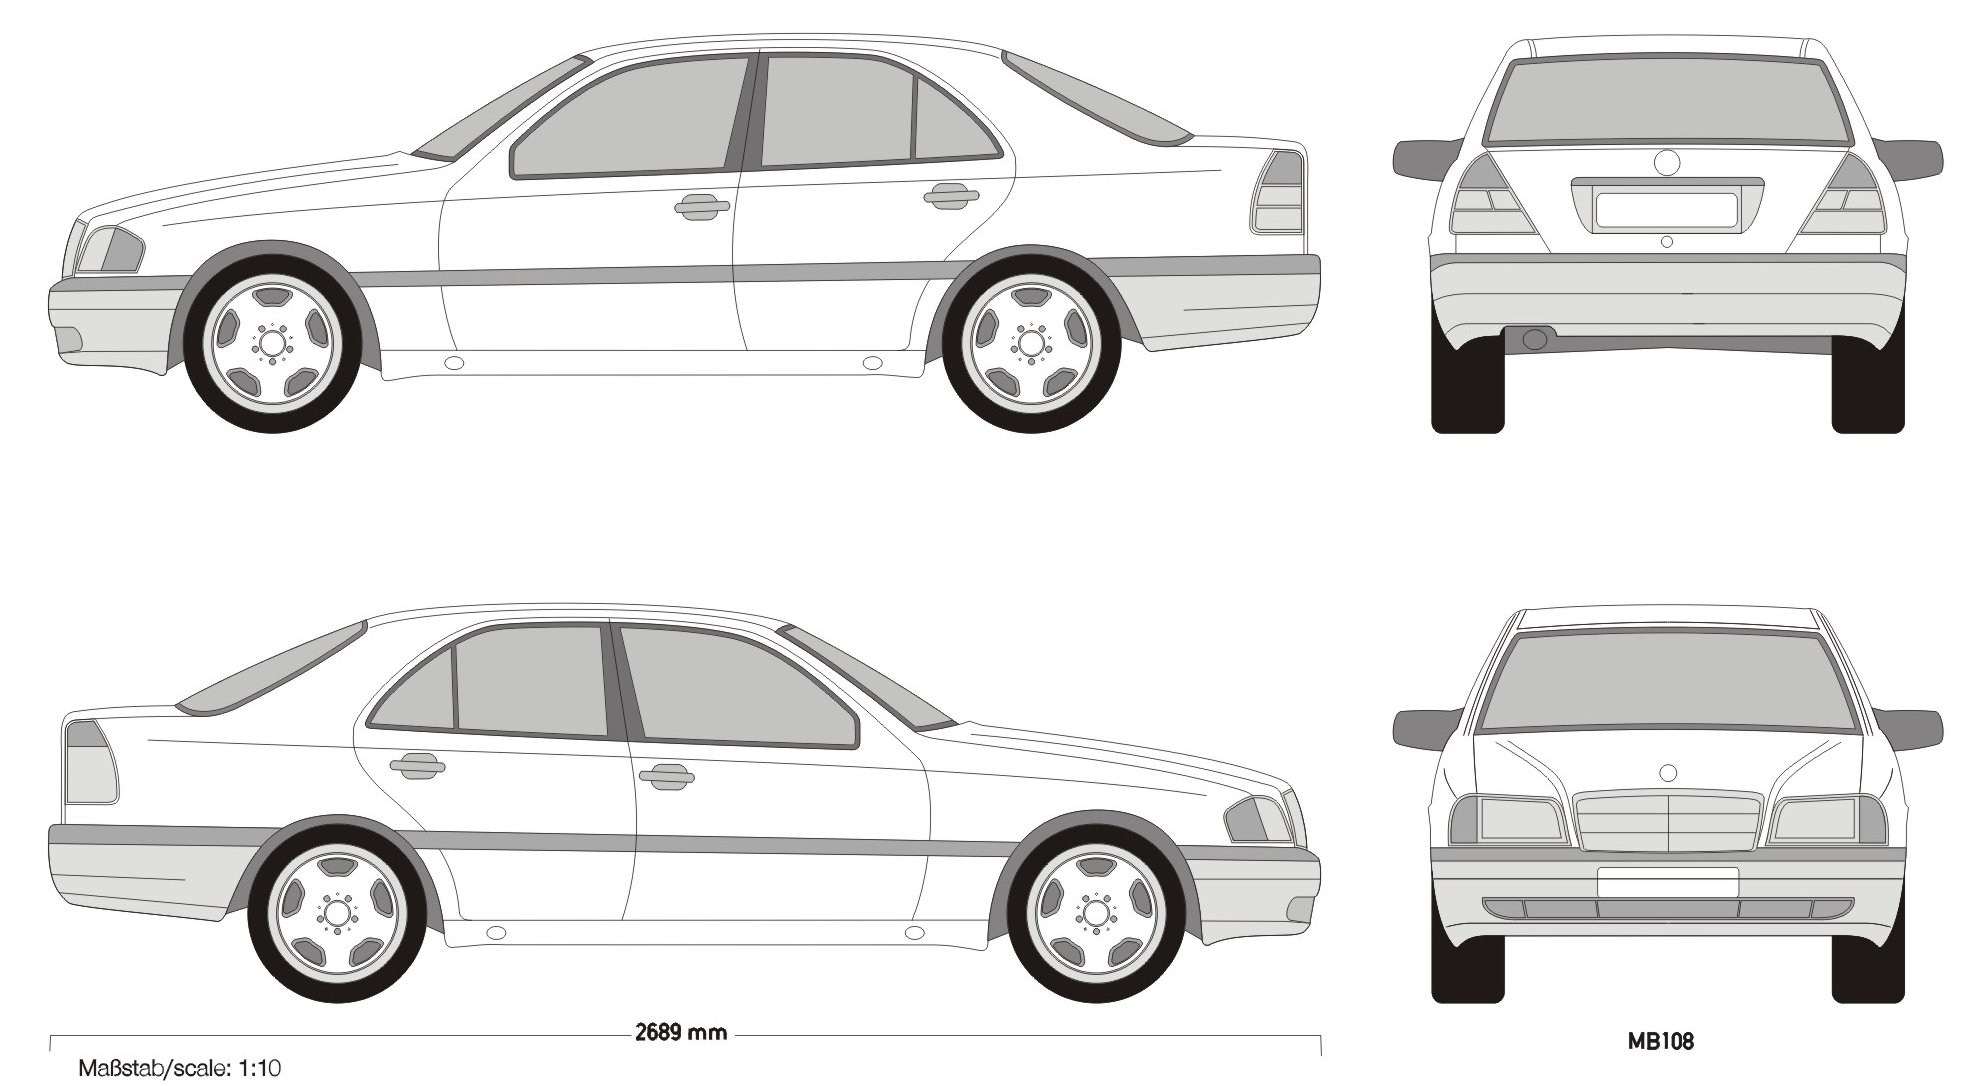 Mercedes Benz C63 Amg Car Wiring Diagram And Fuse Box C180 Diagrams Using Starter Hole As Exhaust Outlet To Together With Drawing Likewise Coloring Cars Pages Further